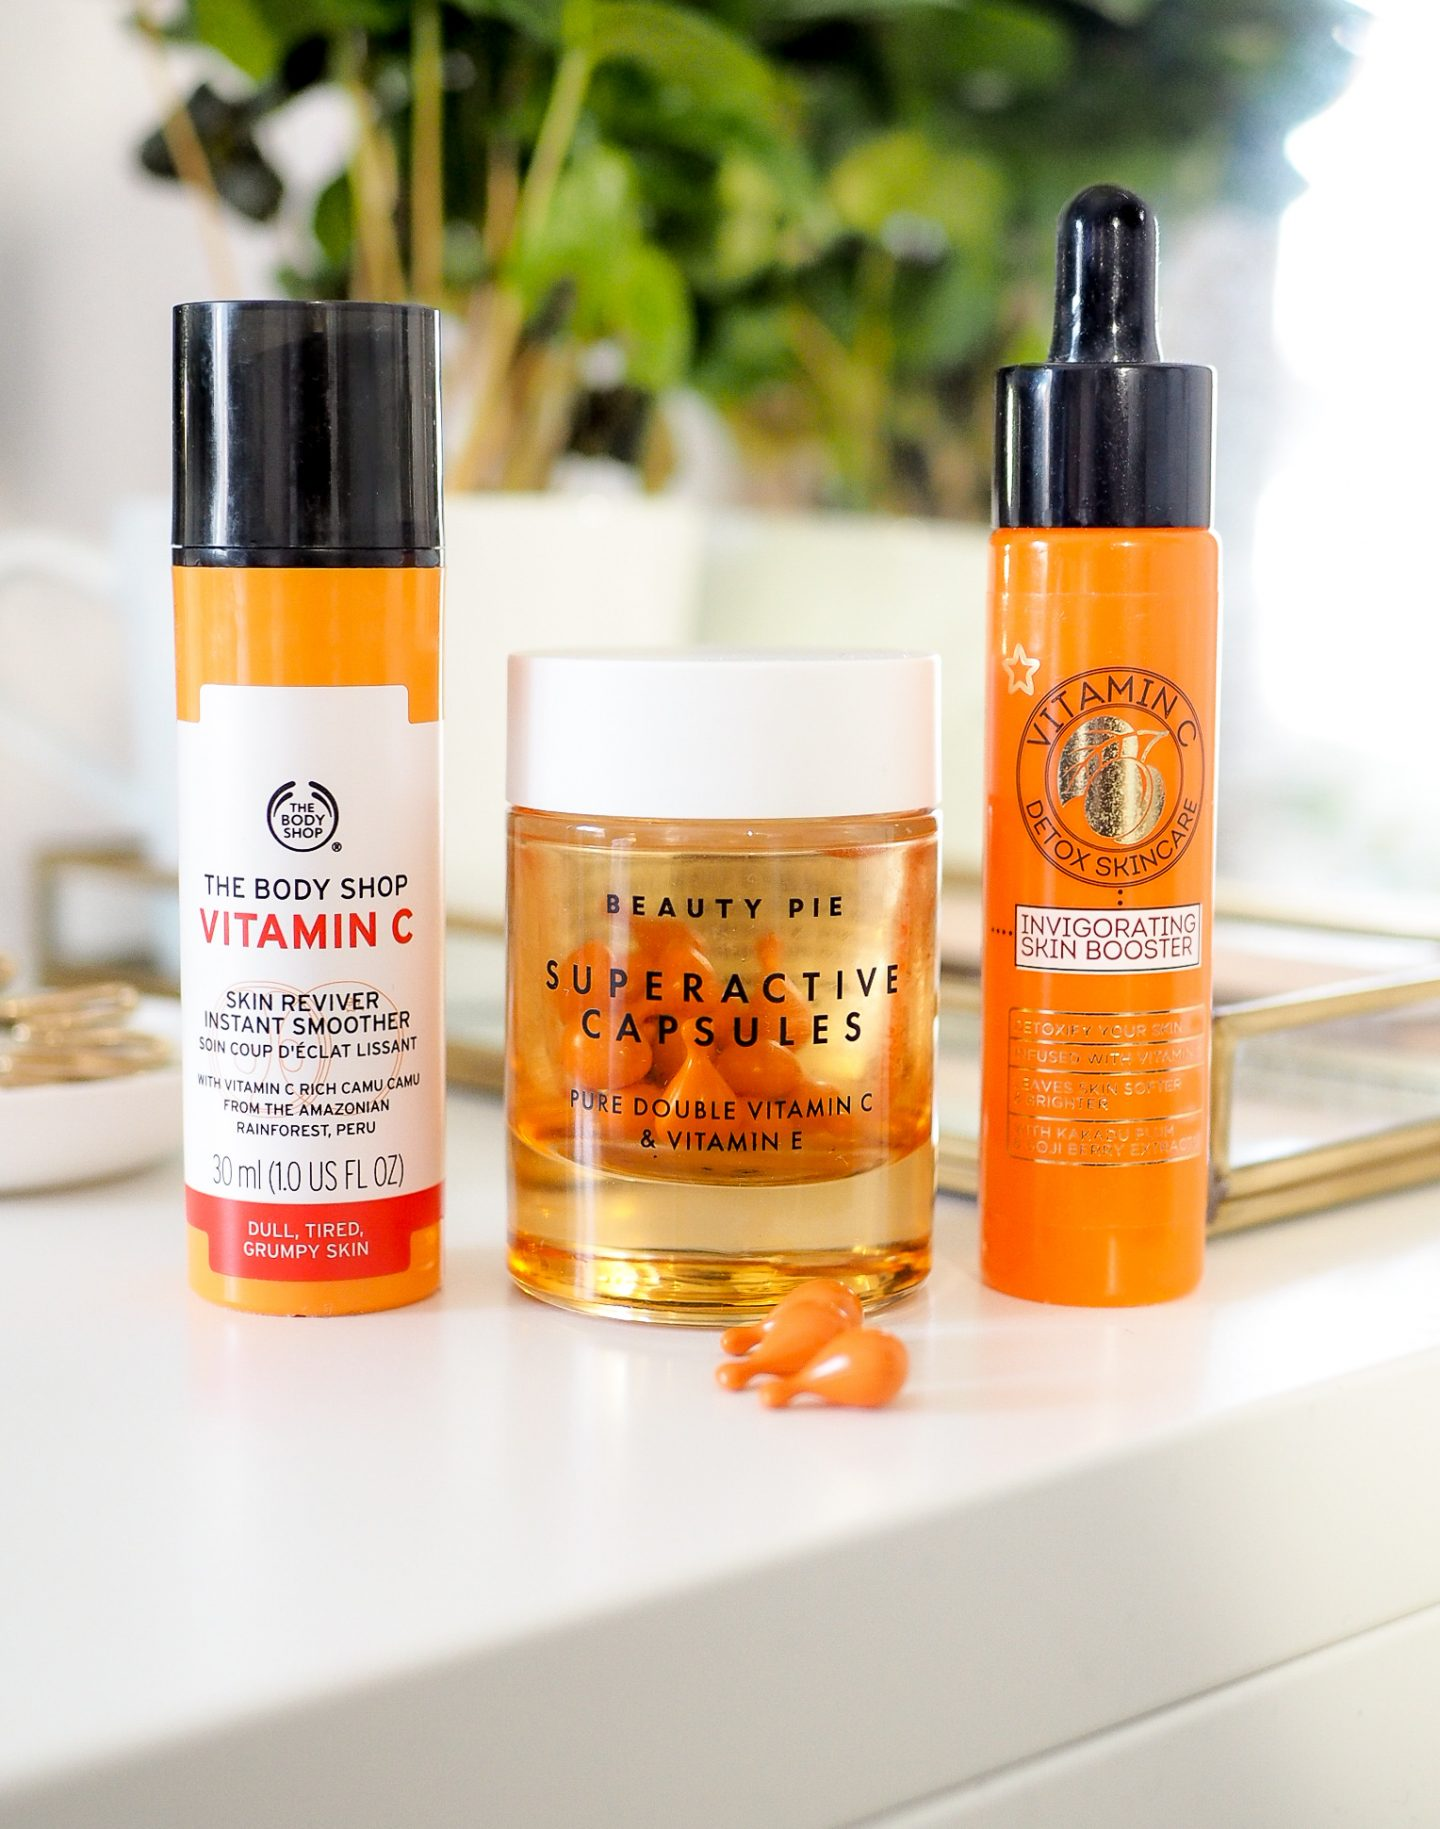 Vitamin C: The Amazing Skincare Hero!